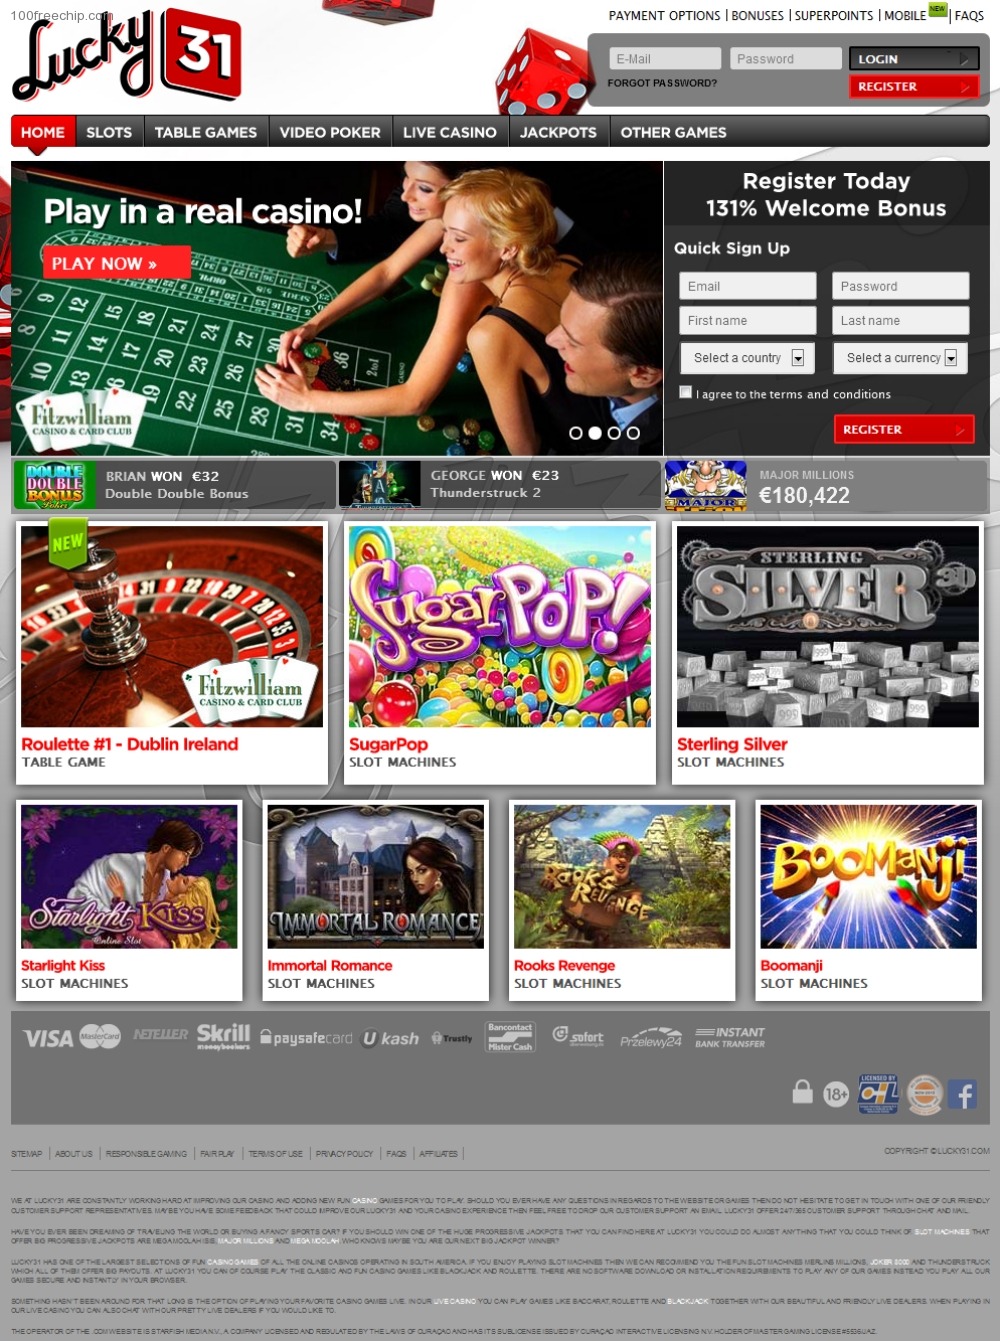 Lucky 31 casino free spins